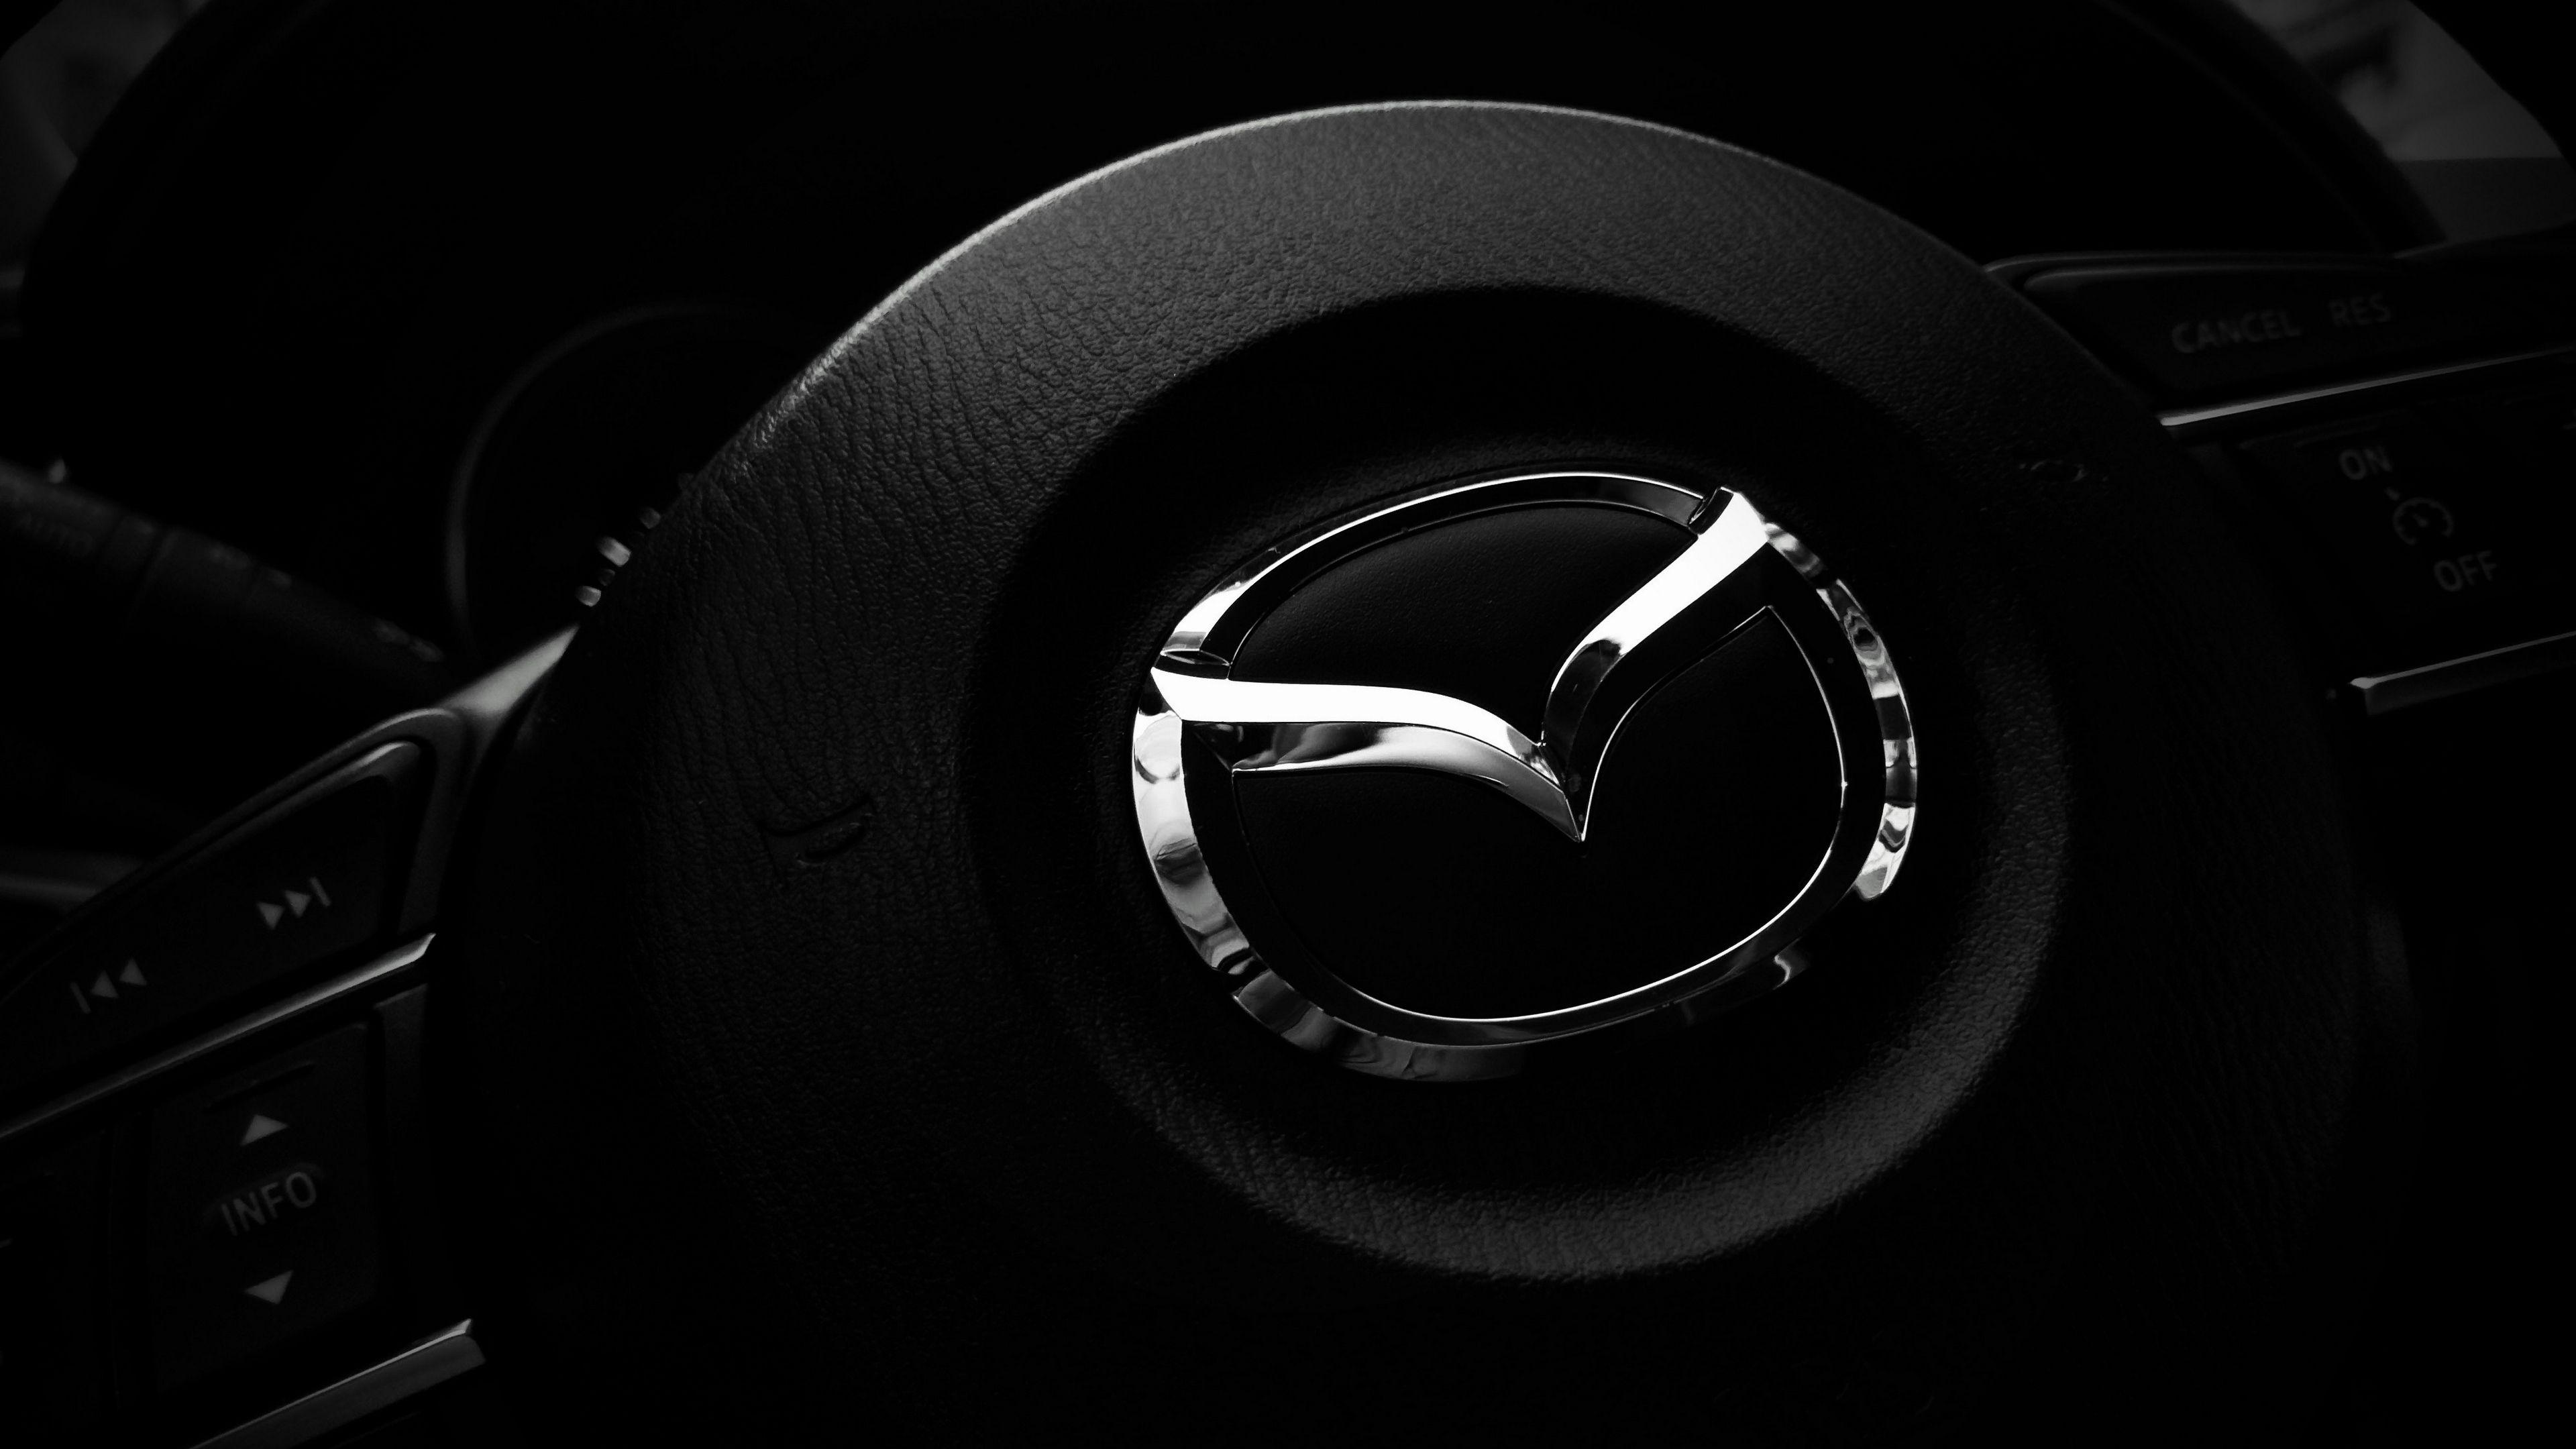 Download wallpapers 3840x2160 mazda, steering wheel, logo 4k uhd 16:9